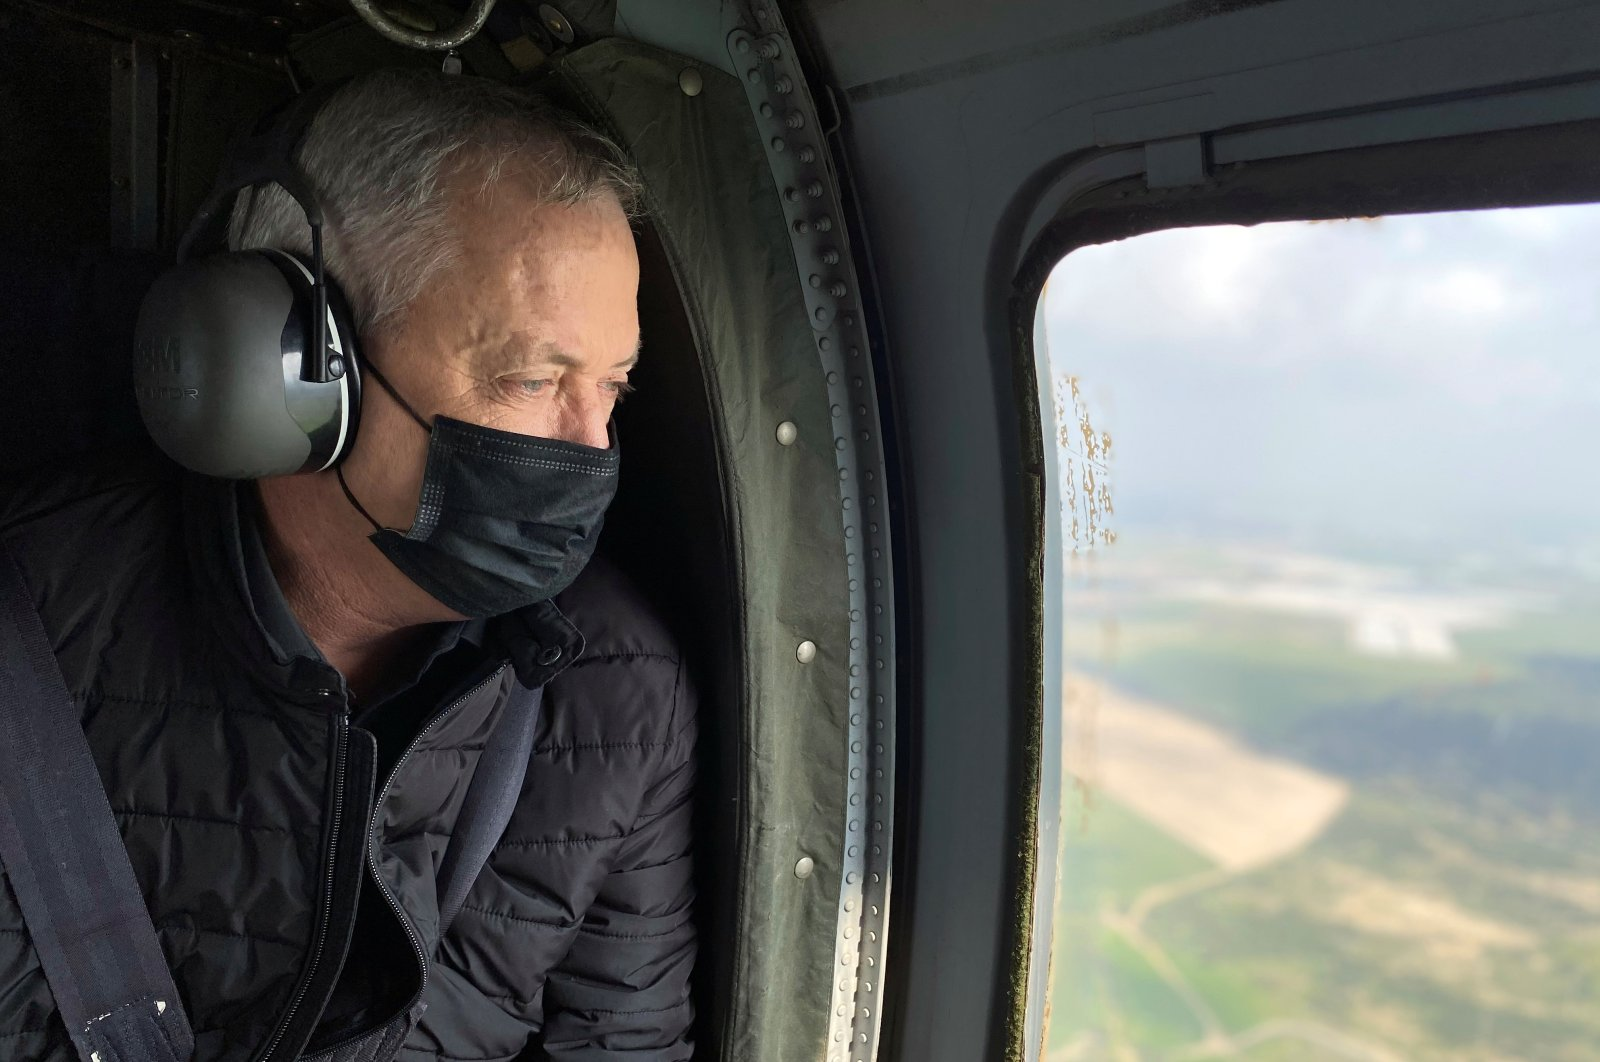 Israeli Defence Minister Benny Gantz wears a face mask as he looks out from the window of a helicopter during a tour of the Gaza border area, southern Israel, March 2, 2021. (Reuters Photo)